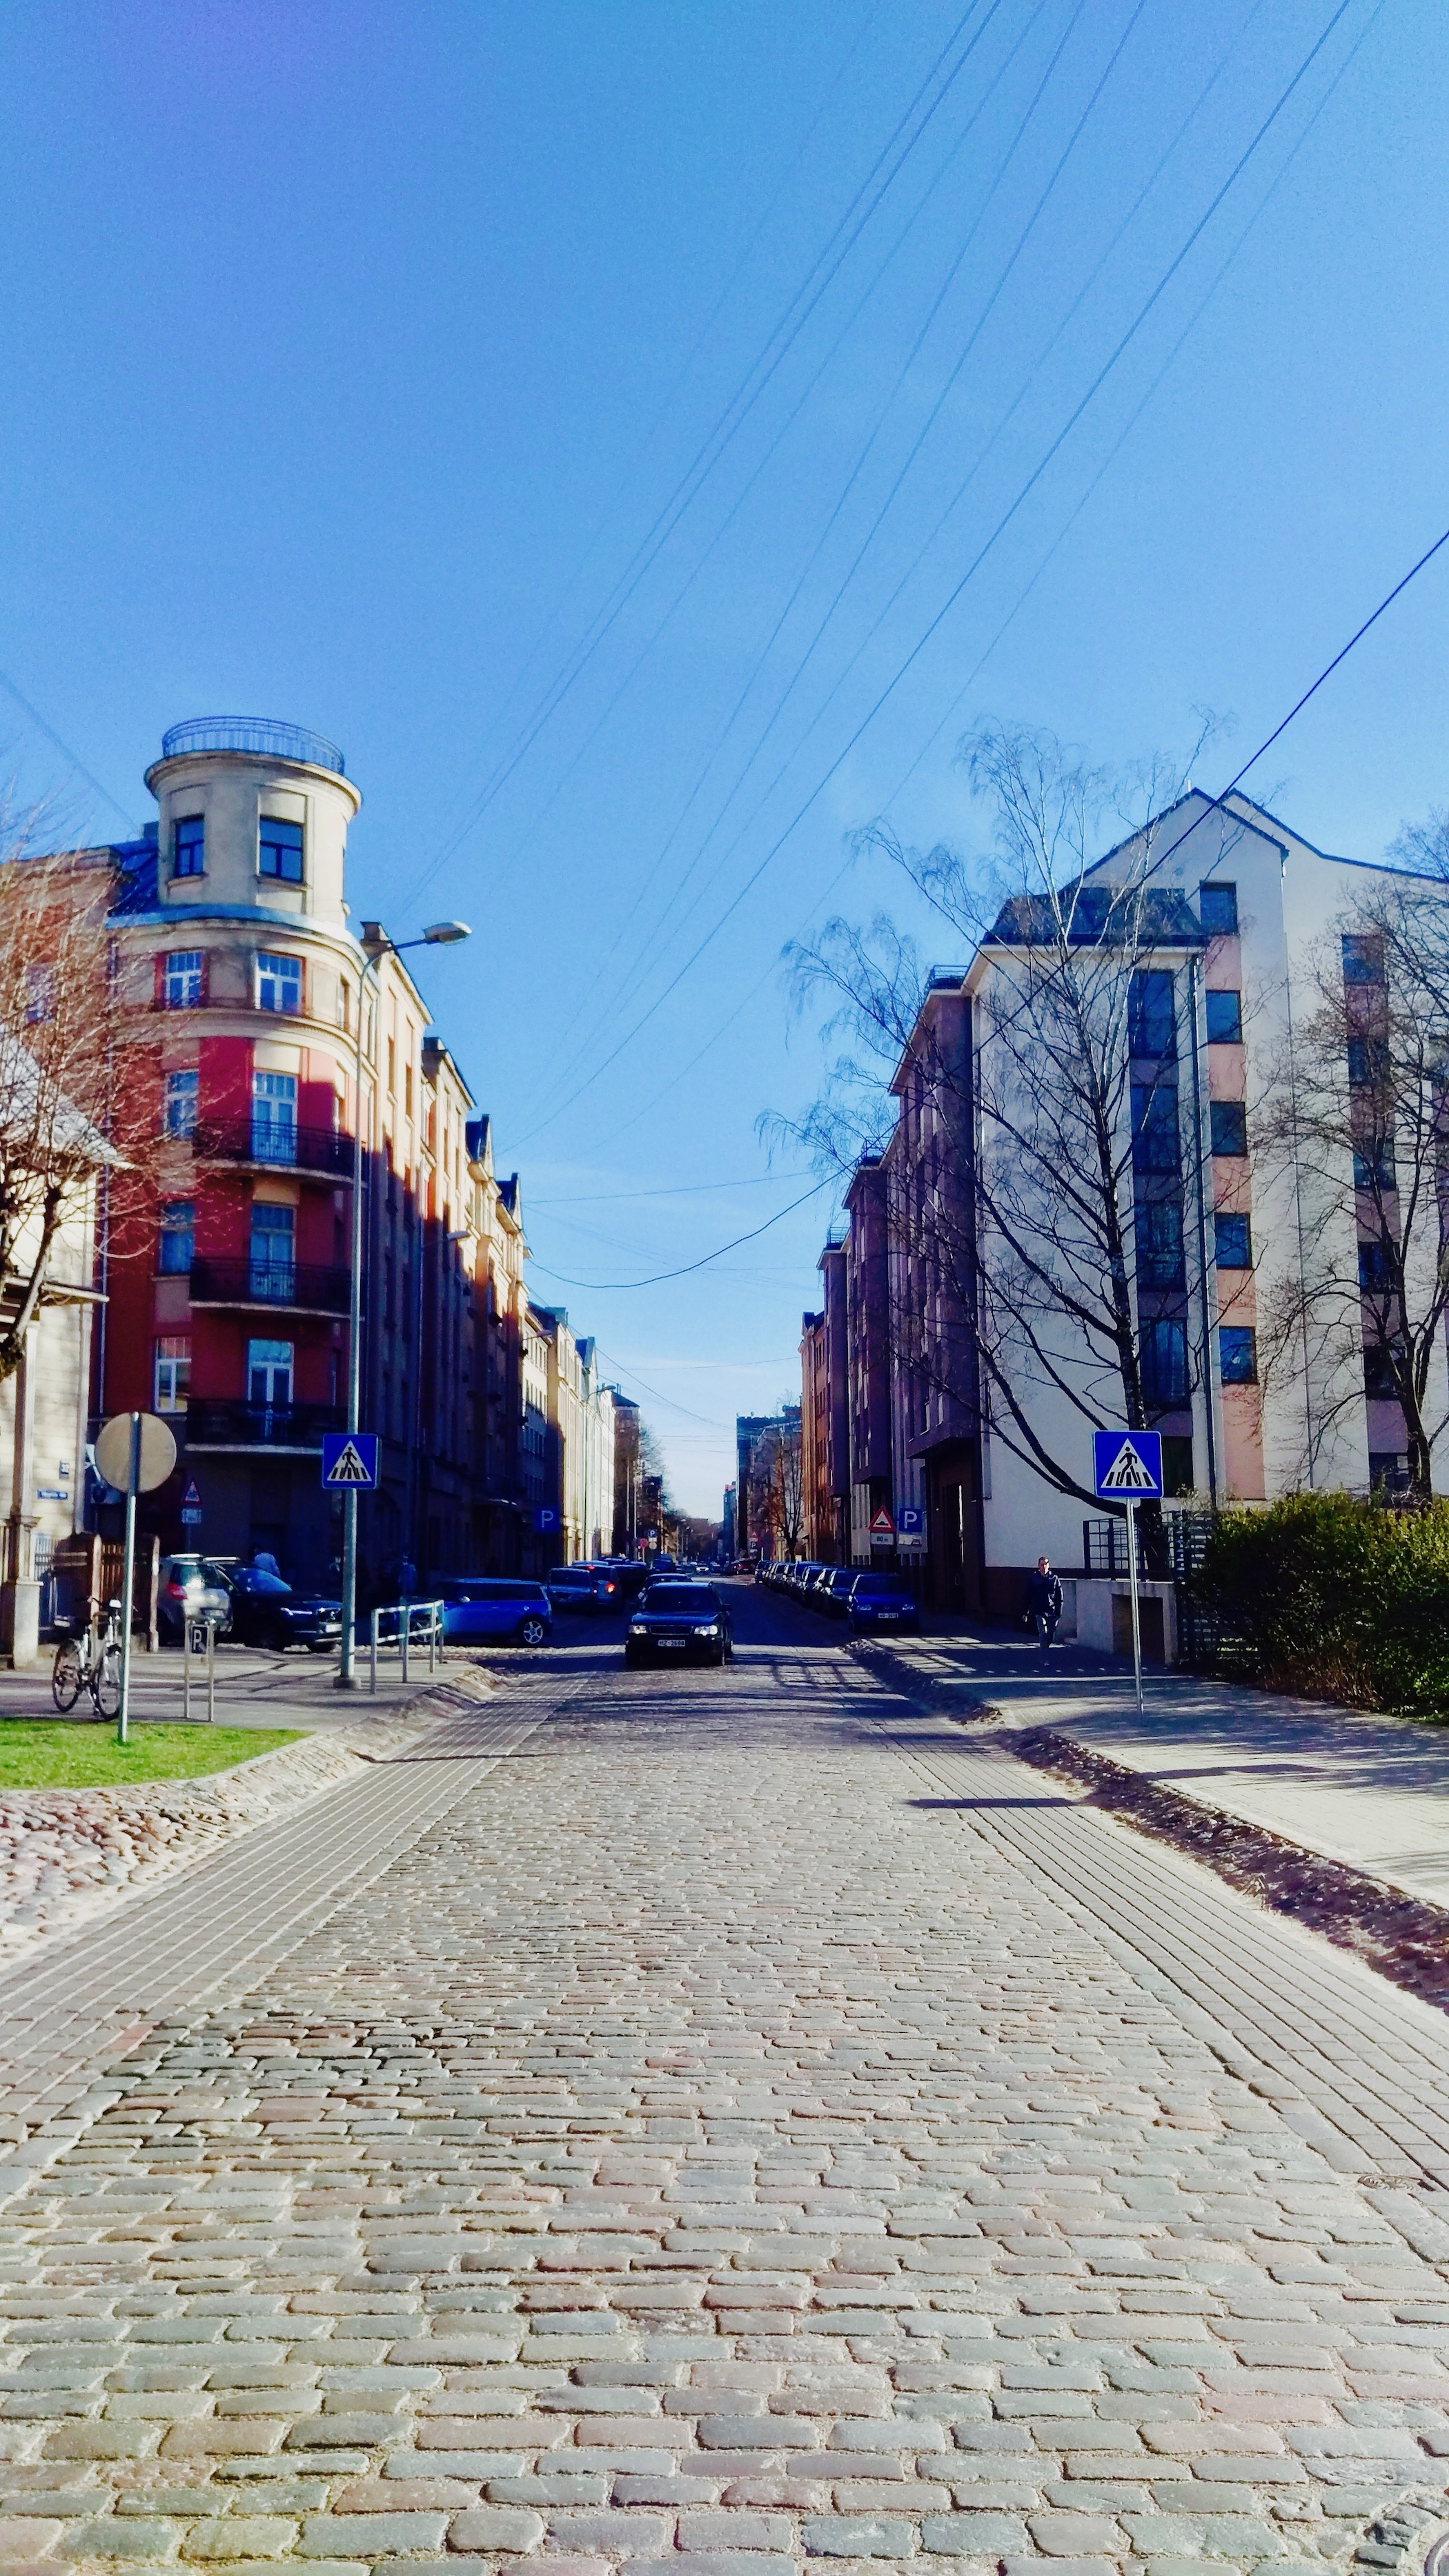 One of the coolest places to live in Riga - Hospitāļu Street